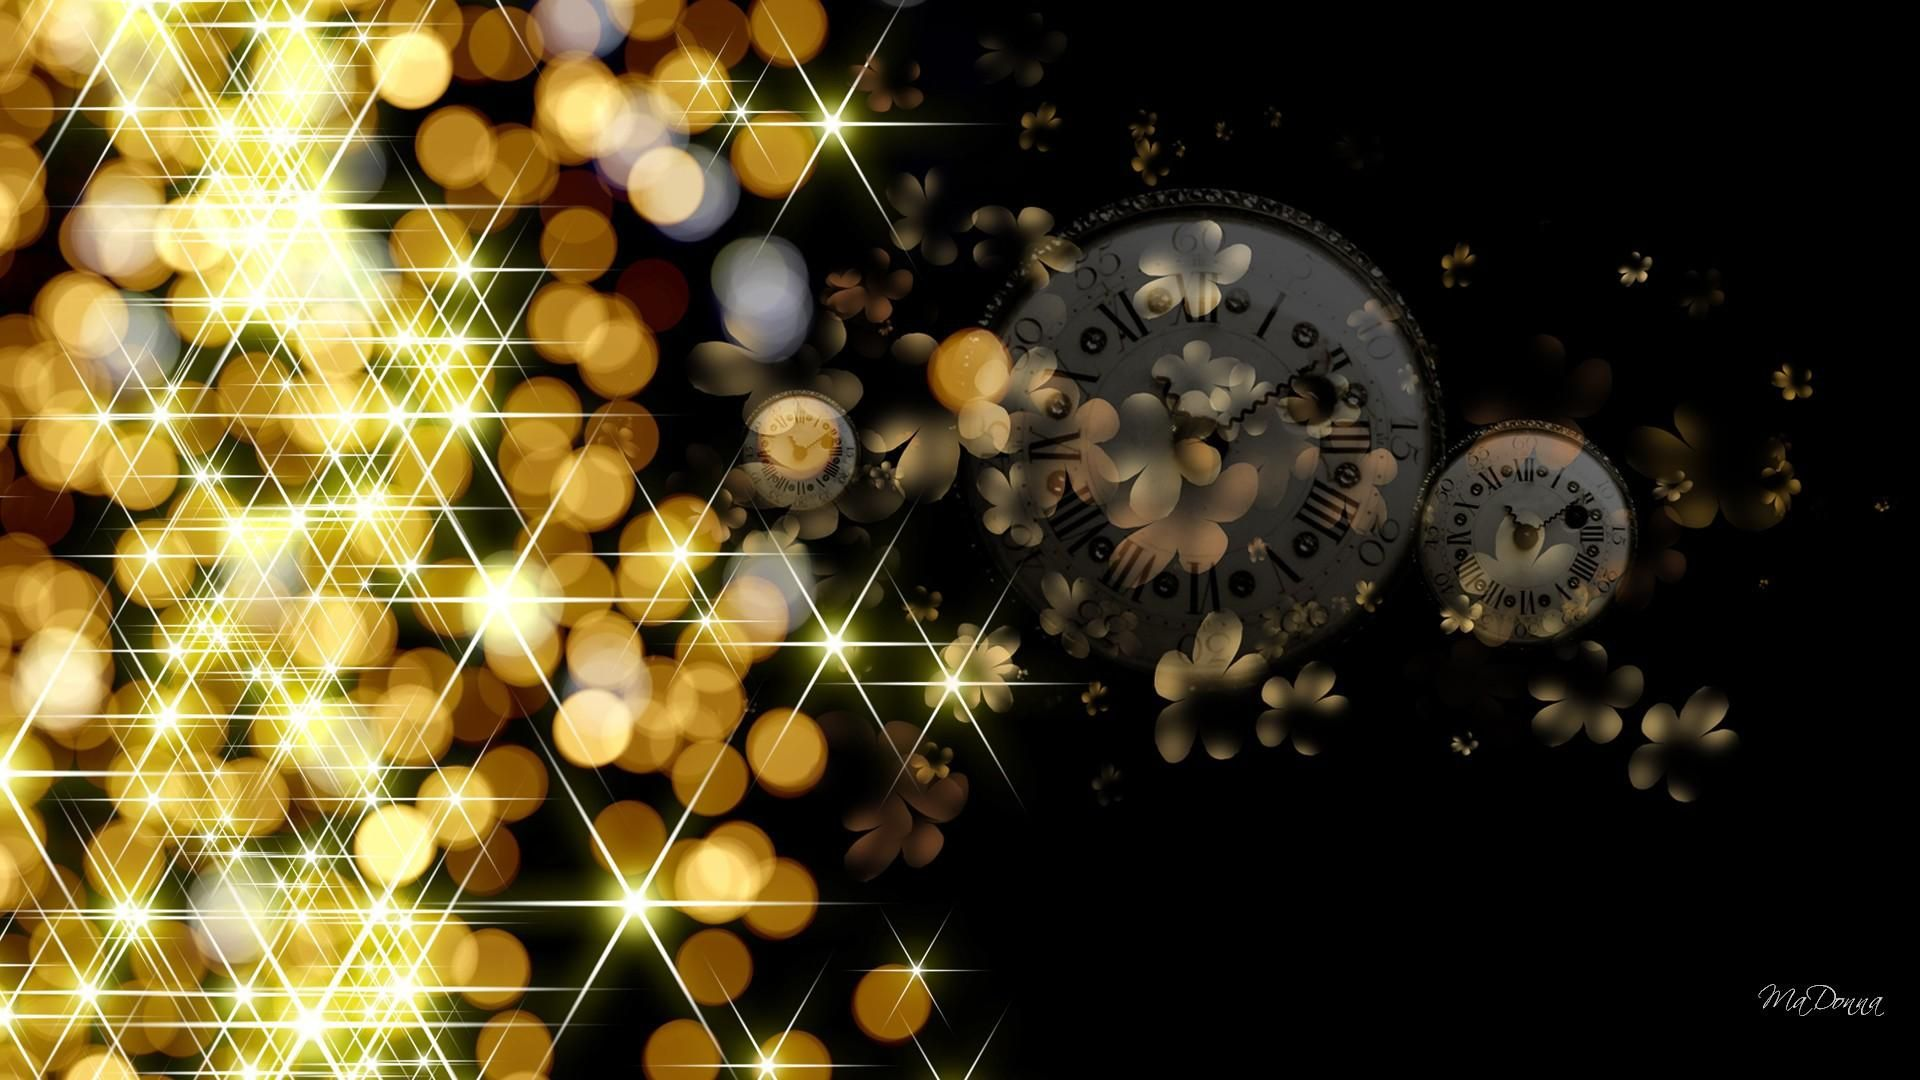 Pin By Silverstonelt Jewelry On Christmas Black Glitter Wallpapers Glitter Wallpaper Gold Wallpaper